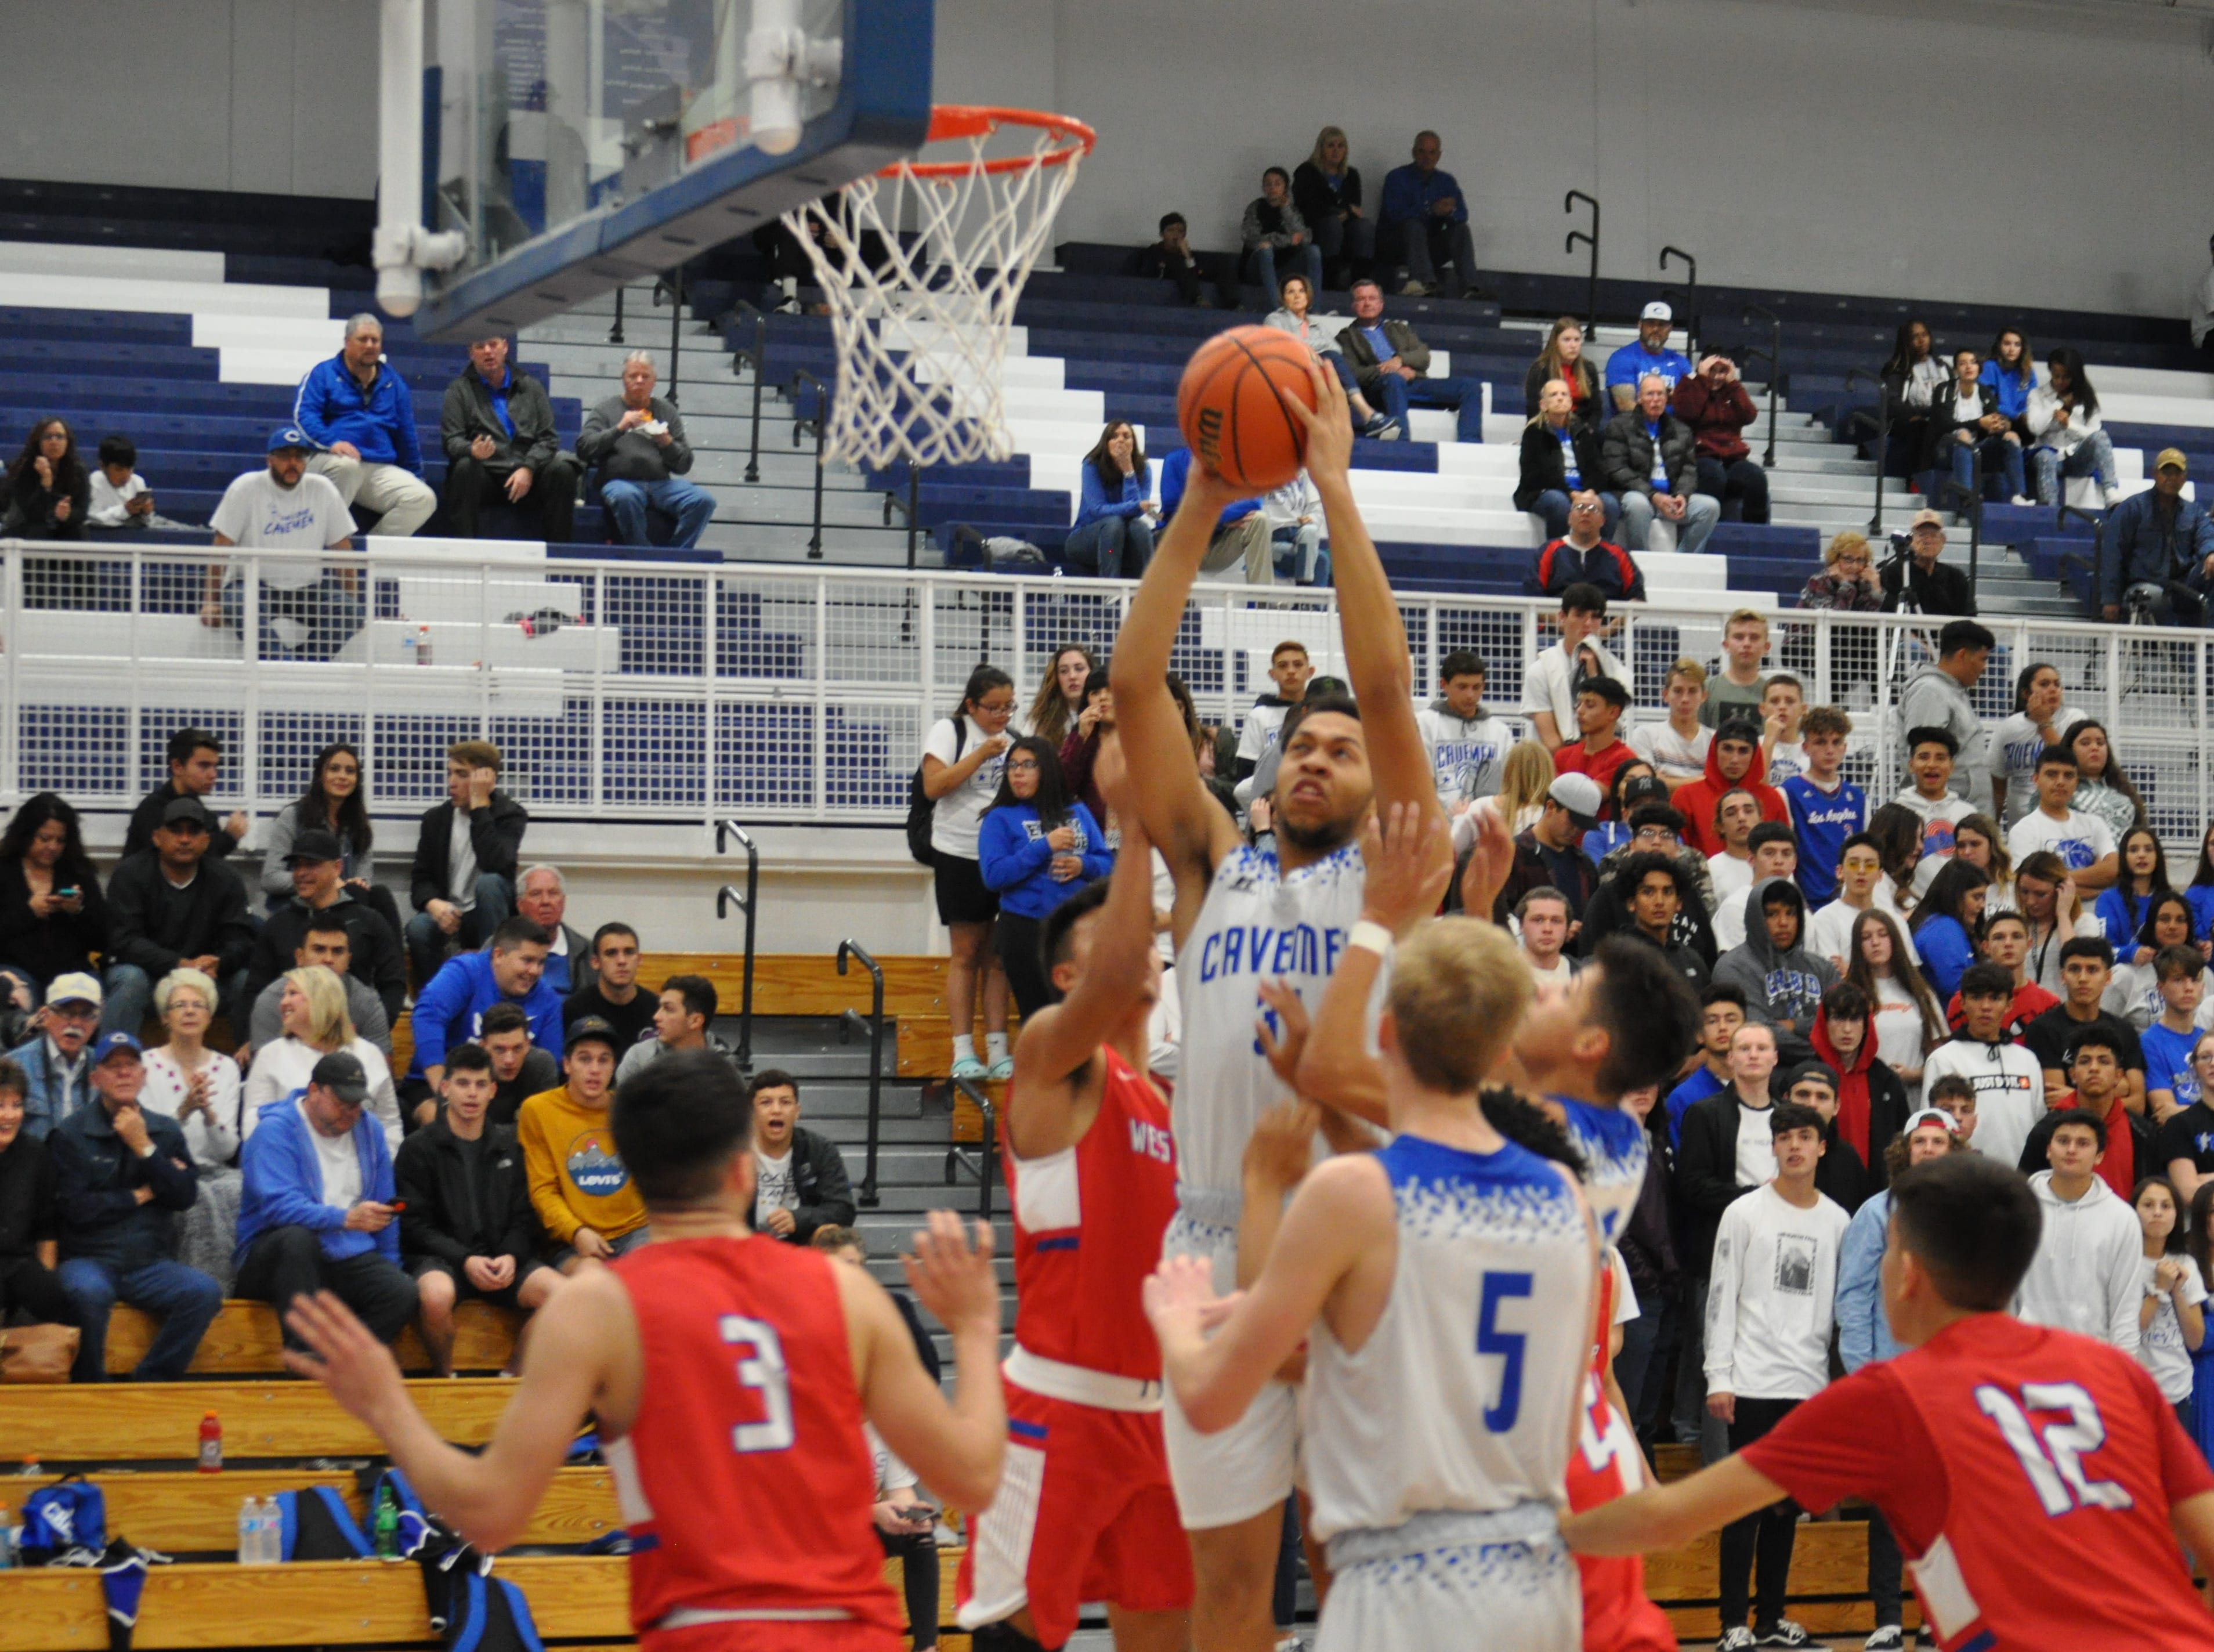 Carlsbad's Phillip Lee goes for a putback shot during Friday's game against West Mesa.